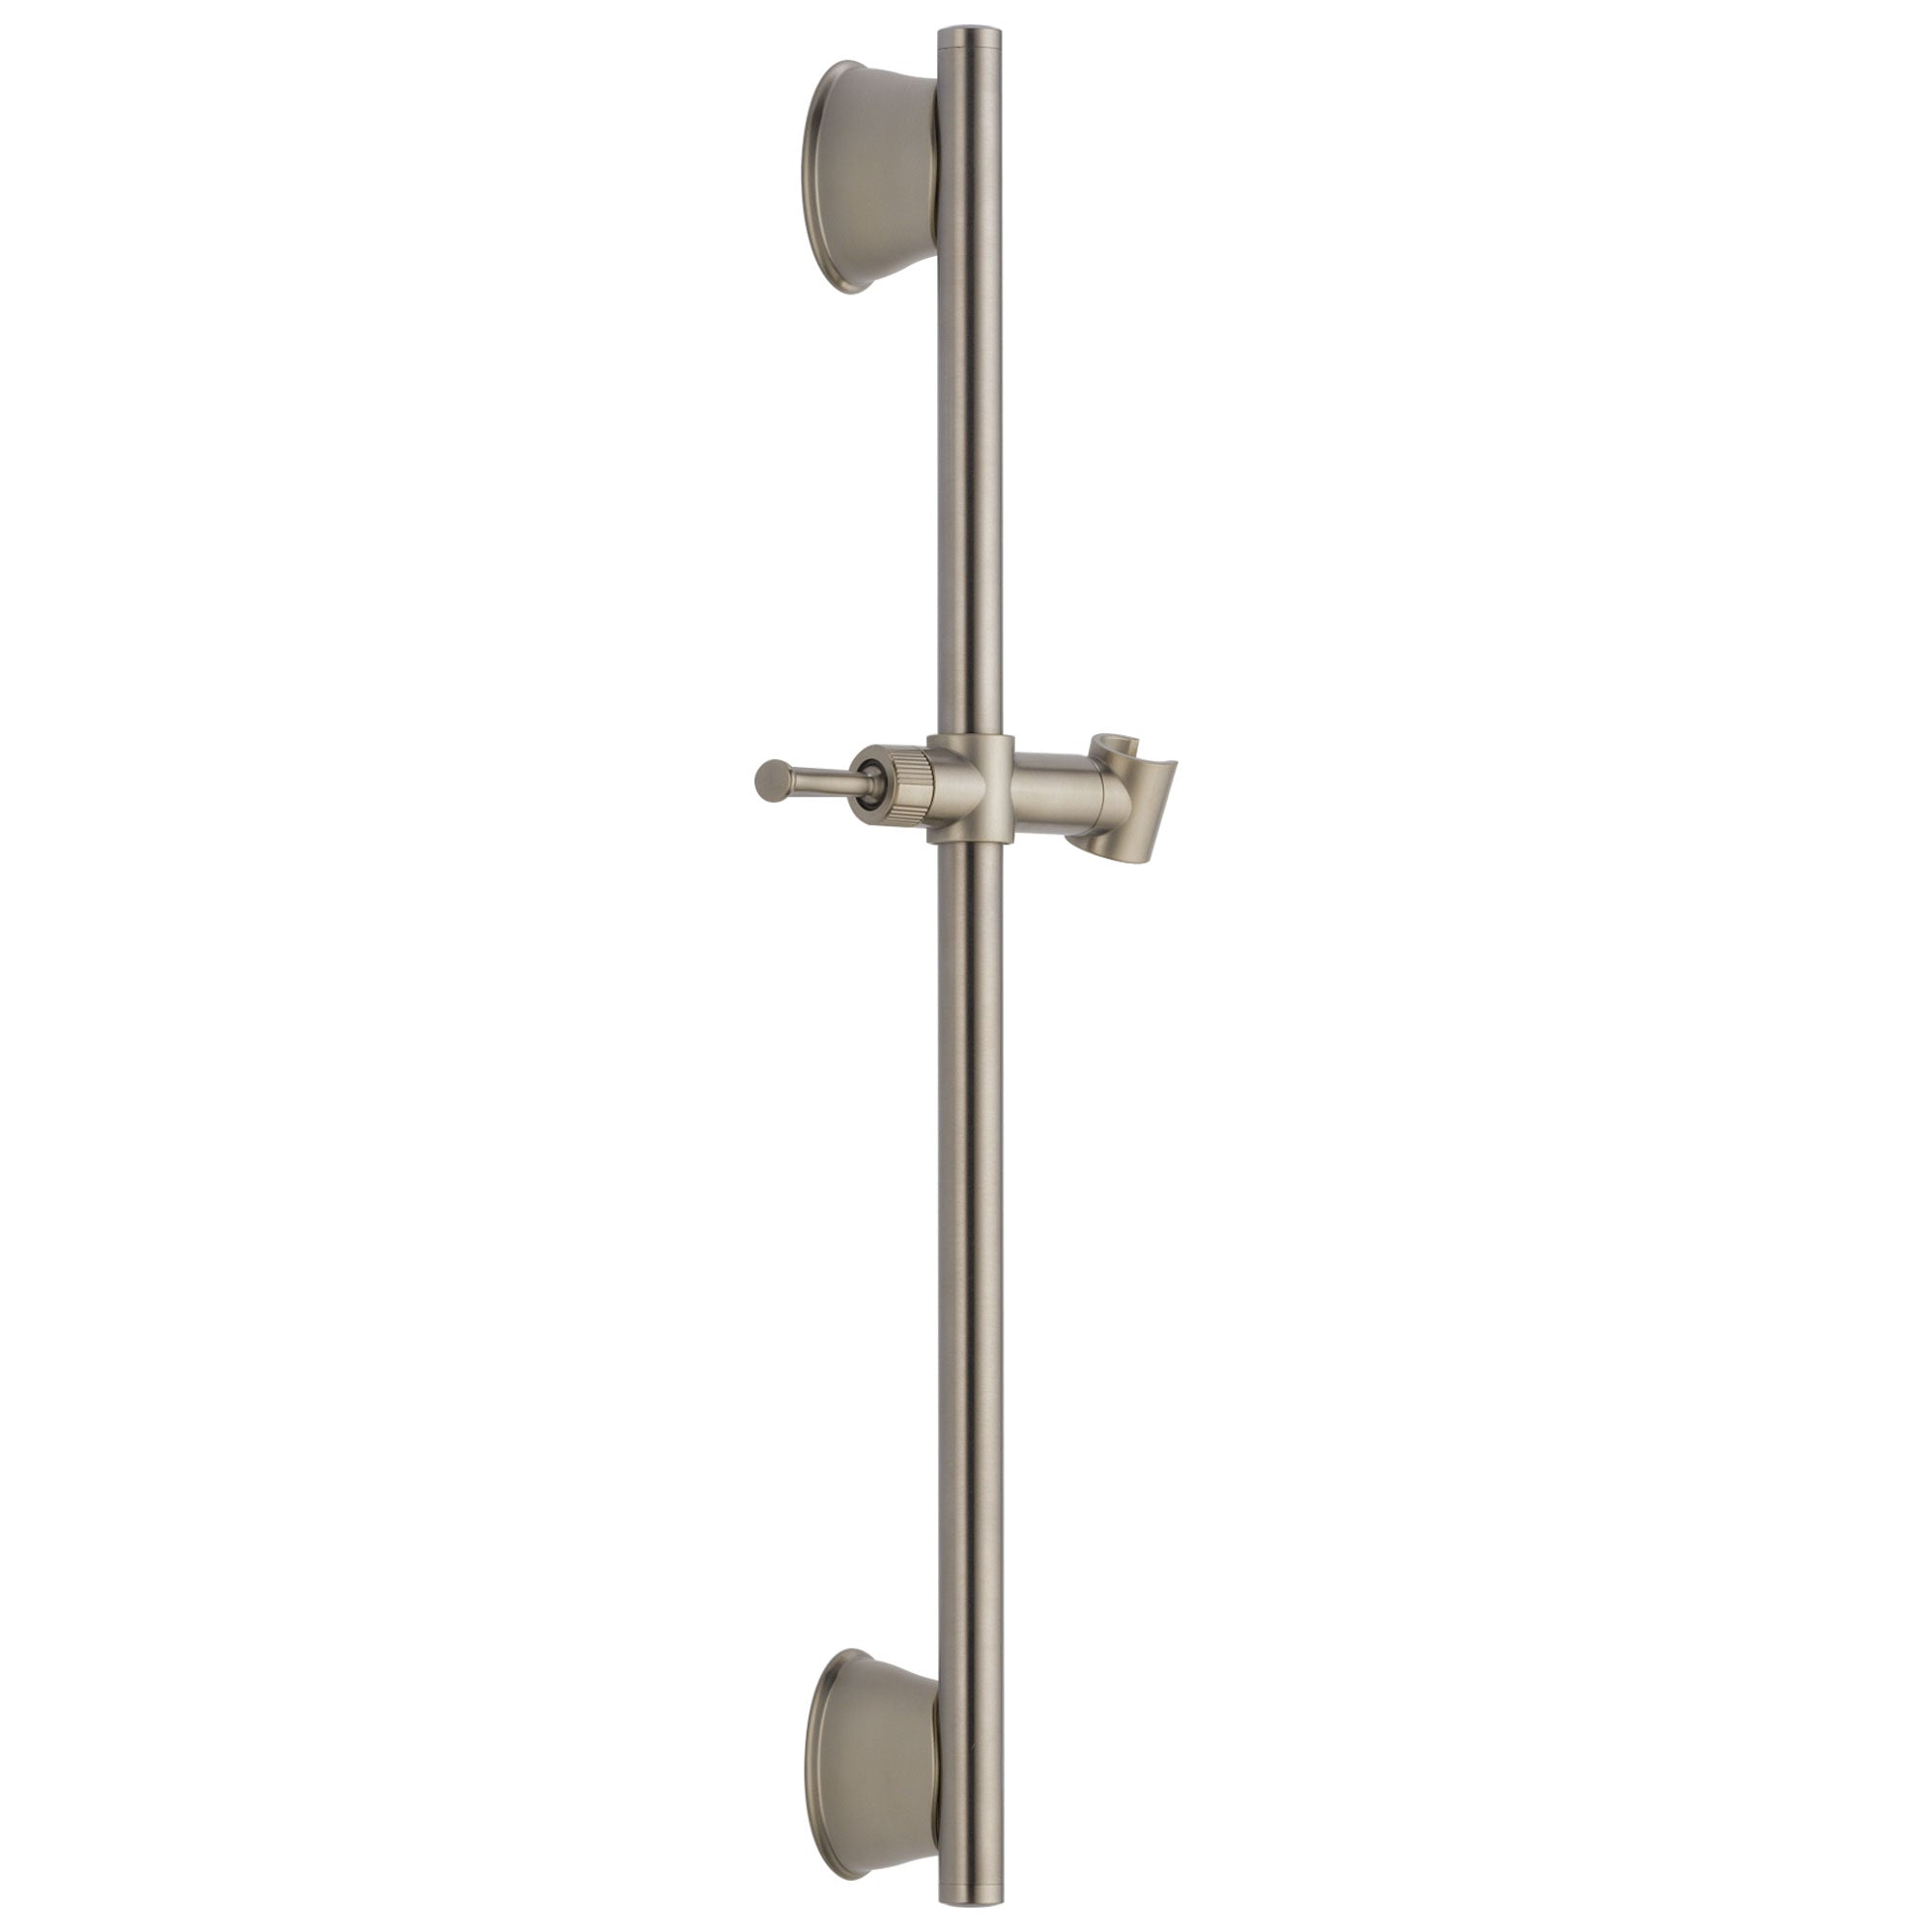 "Delta Universal Showering Components Collection Stainless Steel Finish 24"" Adjustable Wall Mount Hand Shower Slide Bar D55044SSPK"